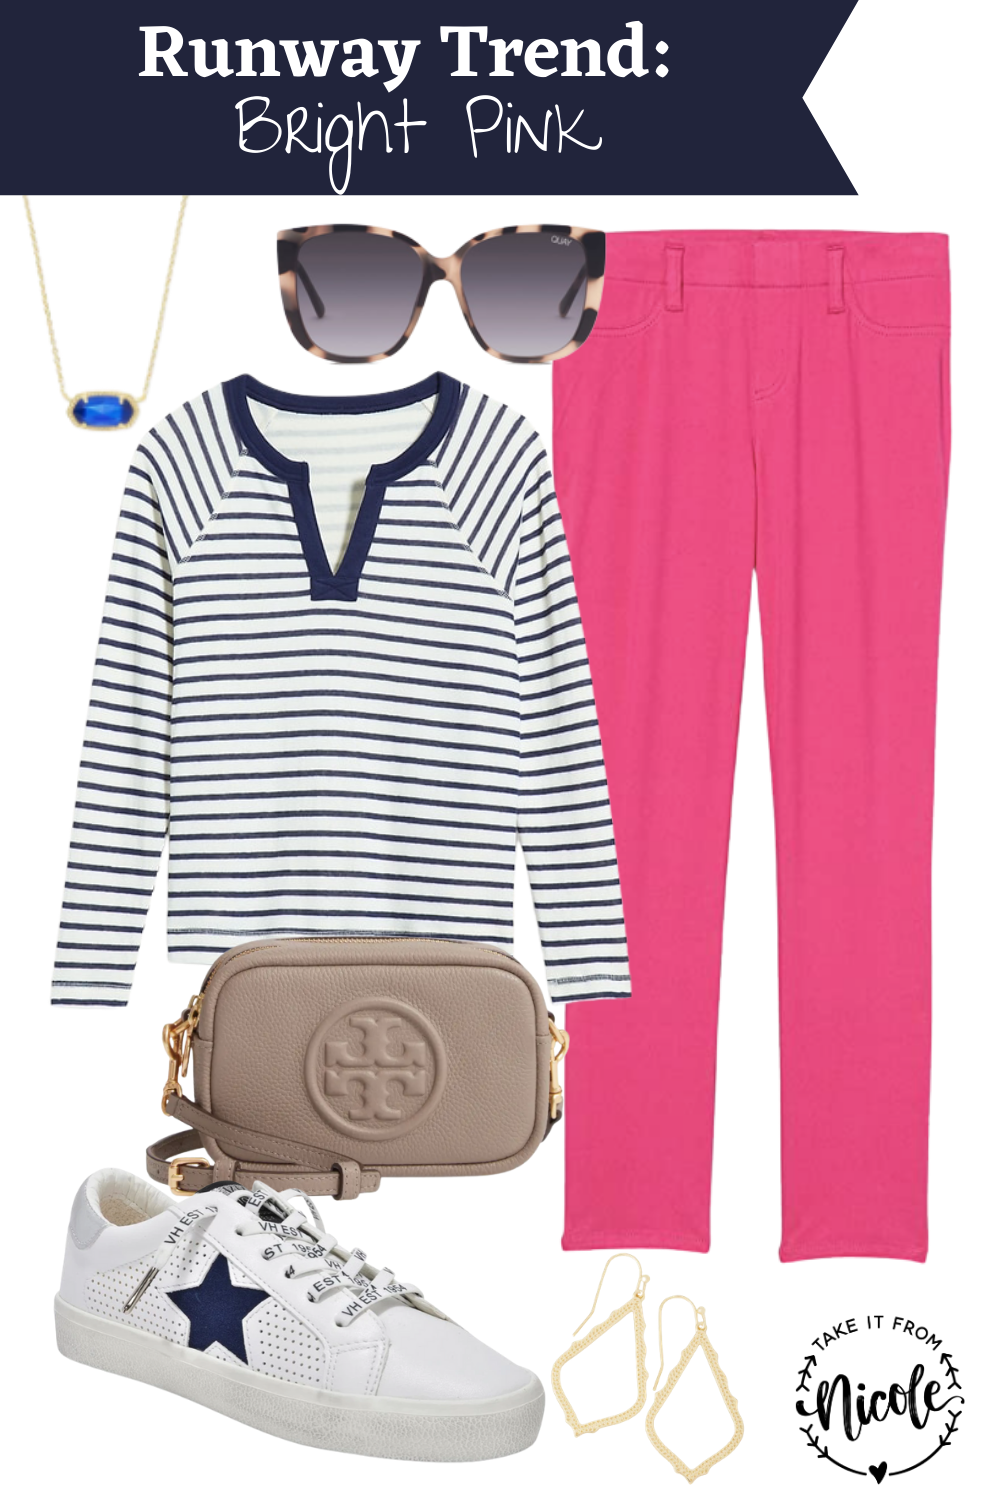 From the Runway to Your Wardrobe: Bright Pink